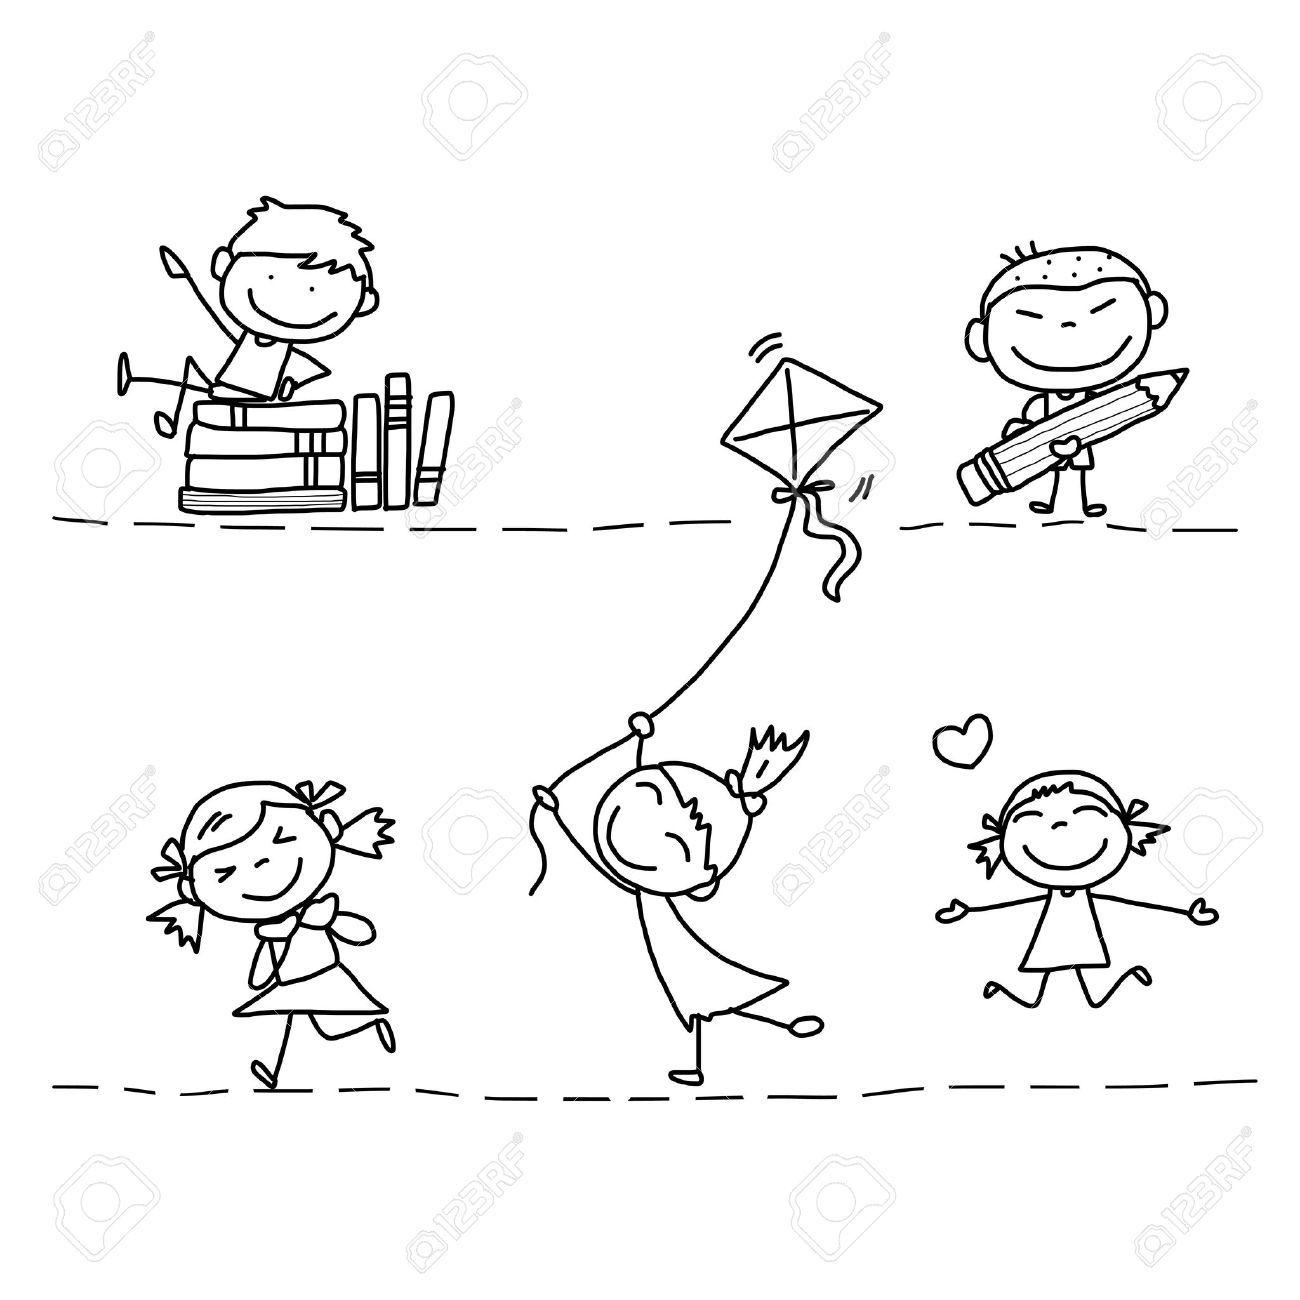 set of hand drawing cartoon happy kids playing royalty free cliparts vectors and stock - Cartoon Drawings Kids